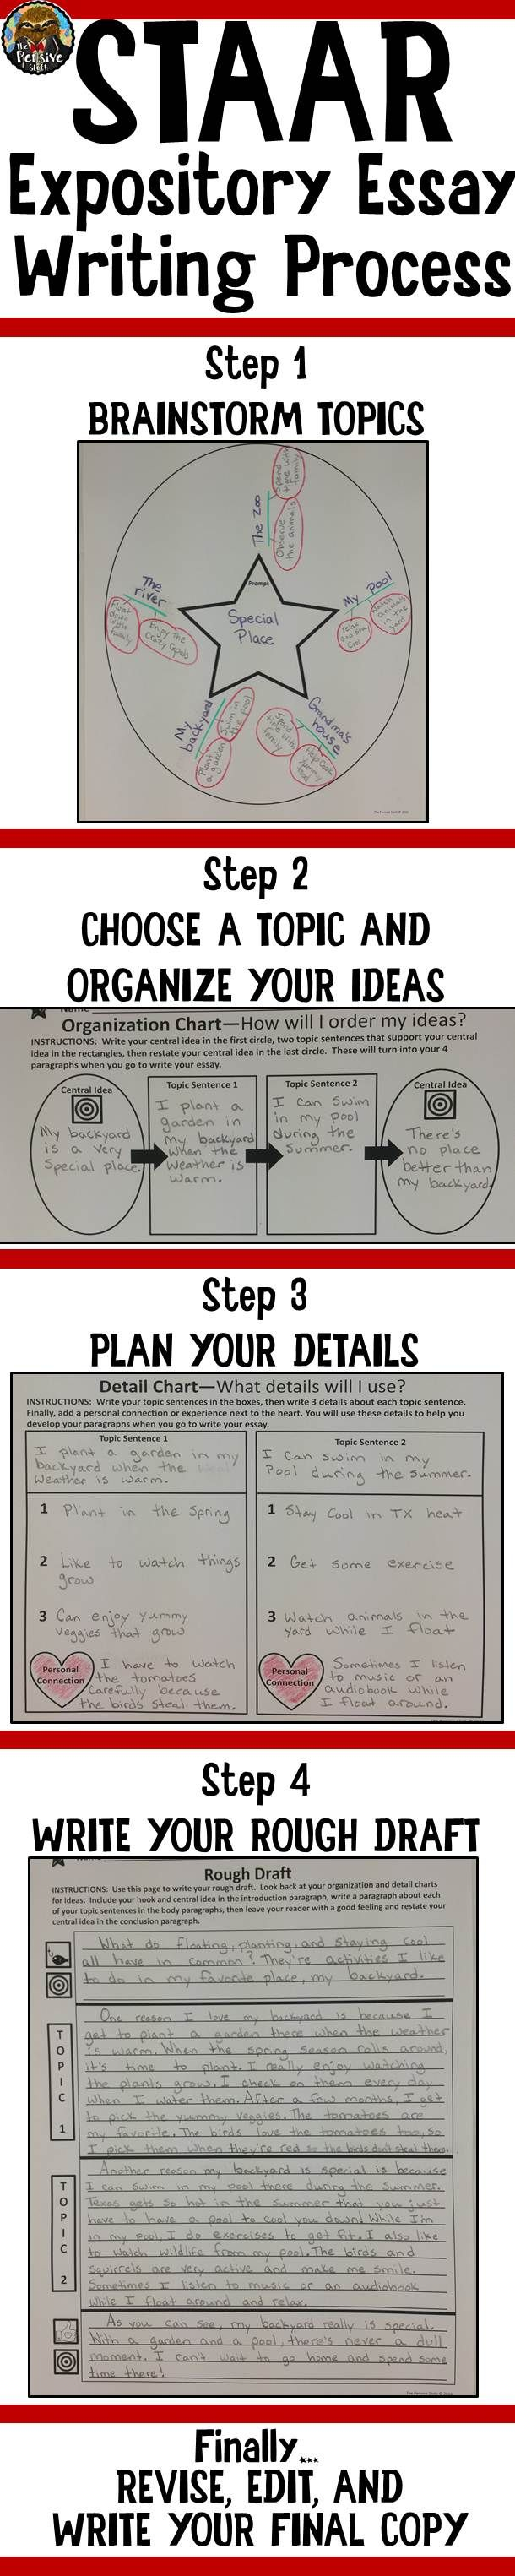 th grade staar writing expository essay graphic organizers 4th grade staar writing for students who struggle writing break the process